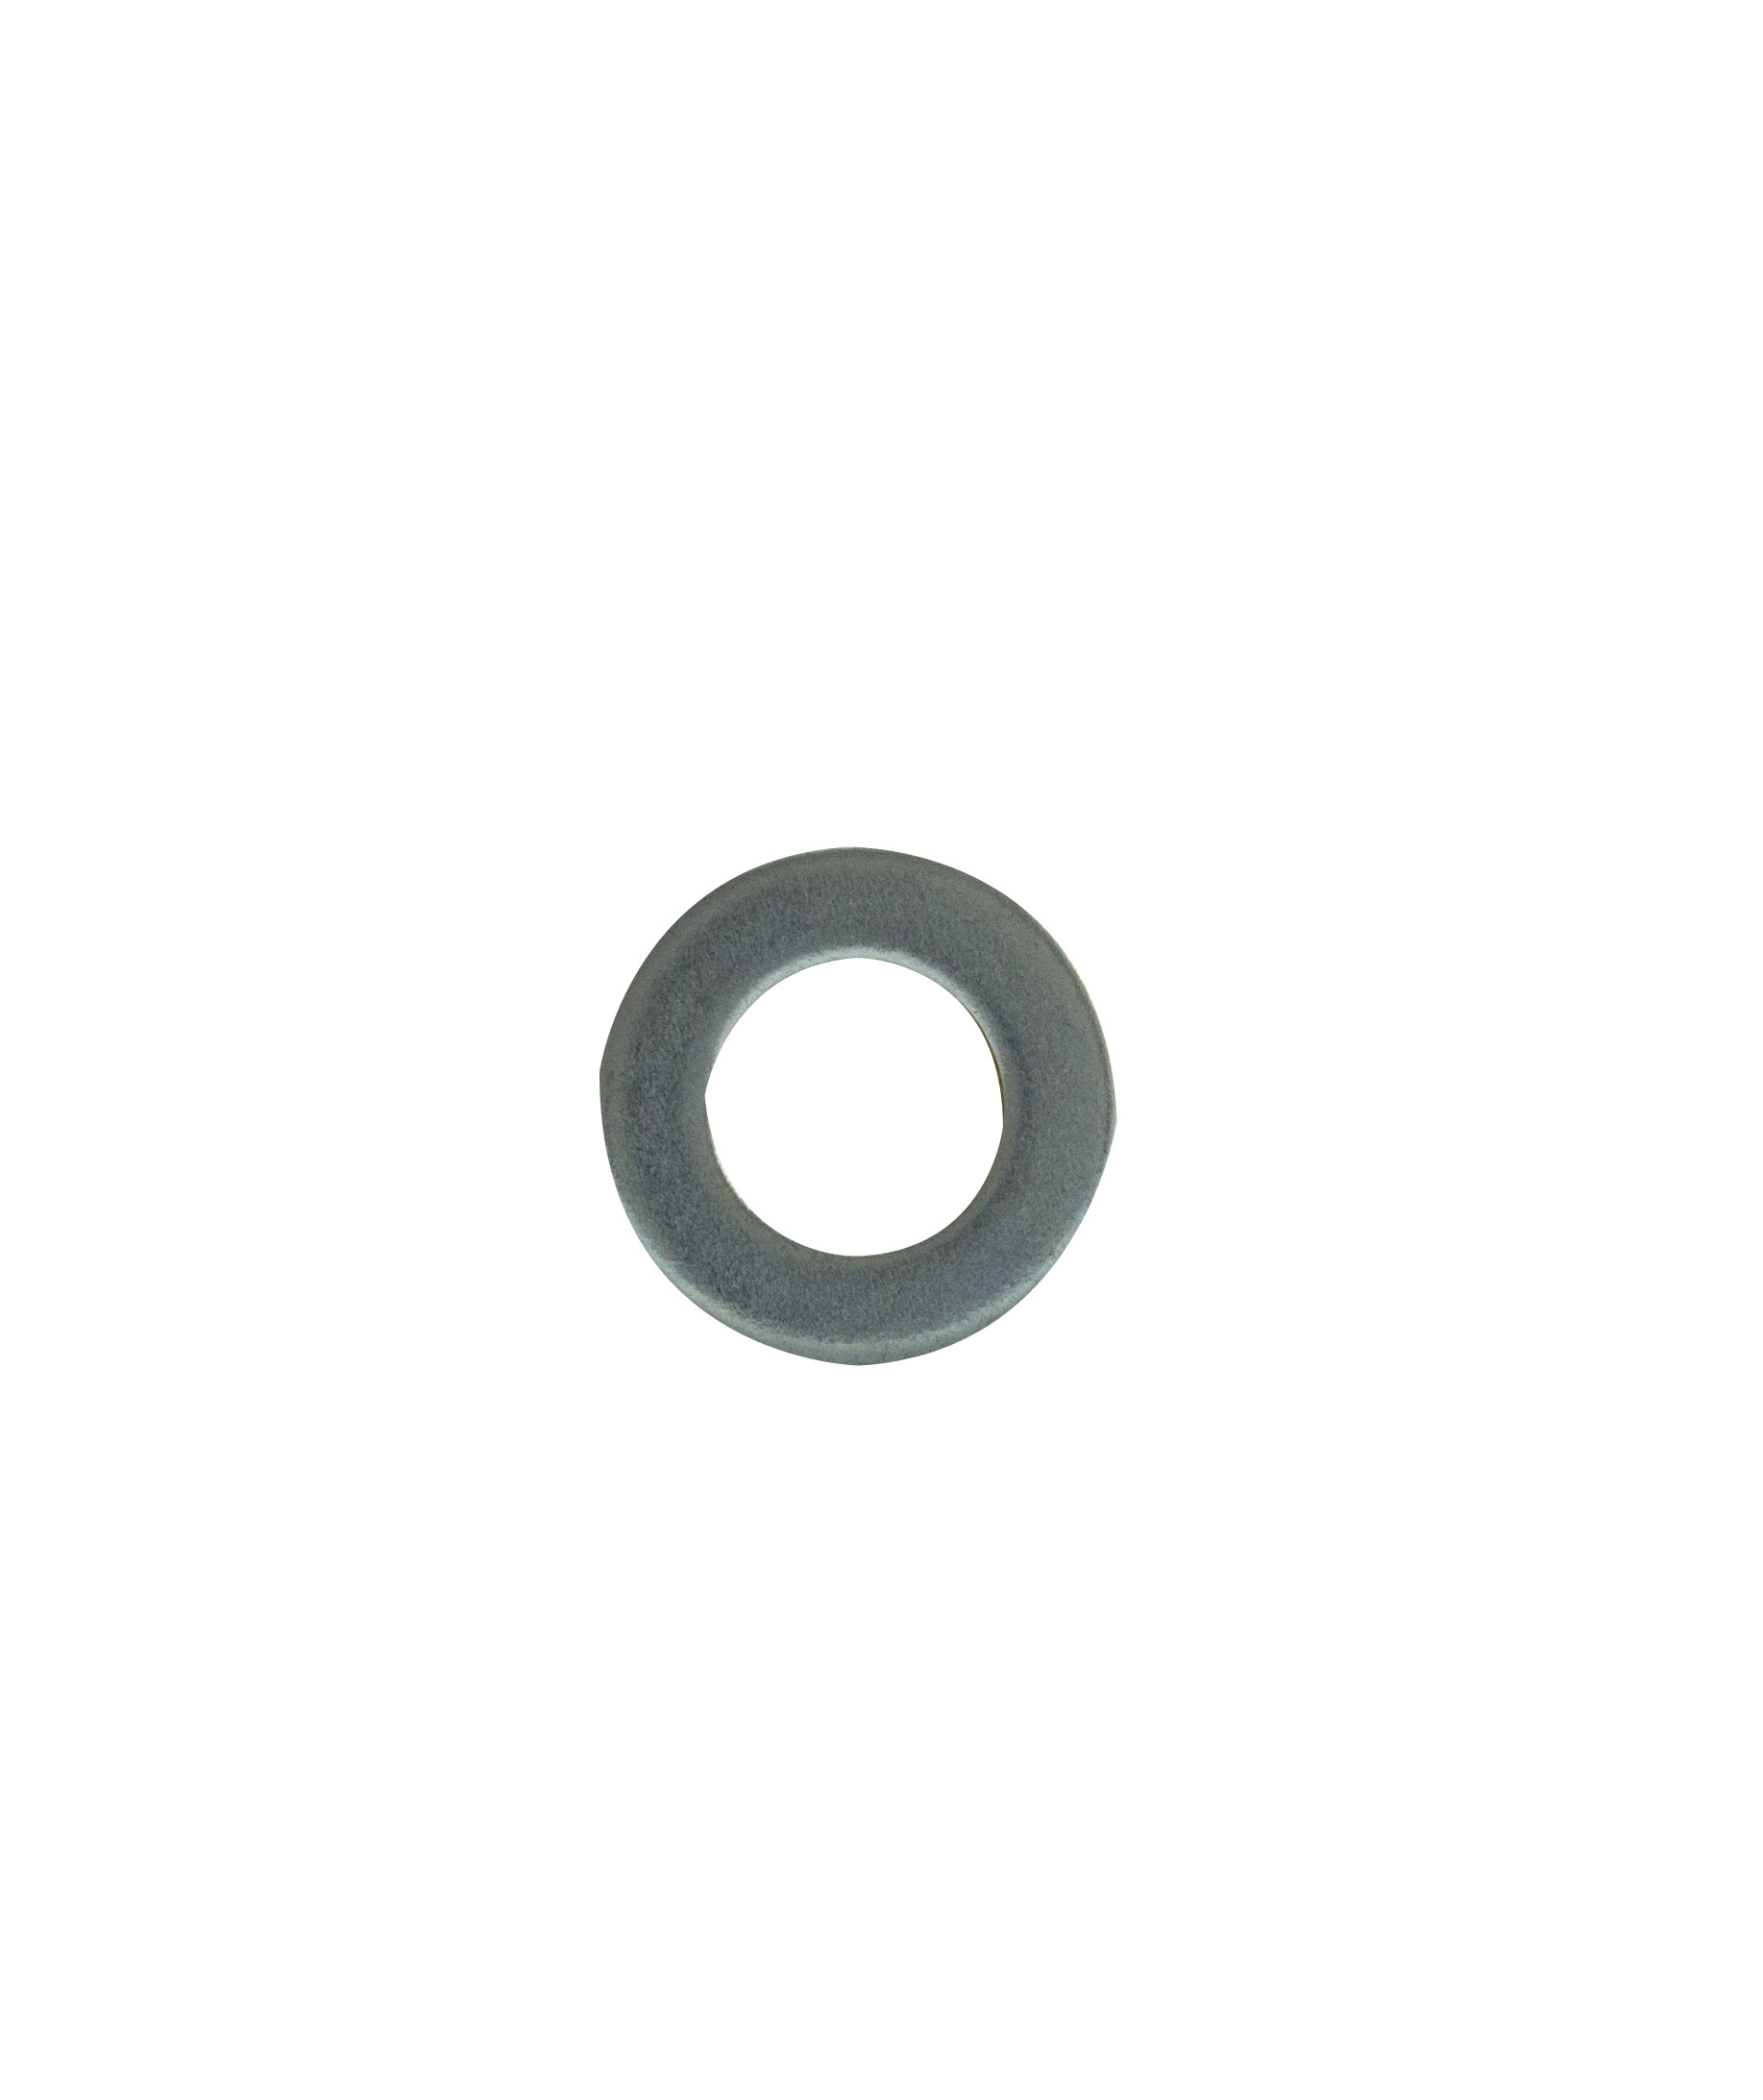 M12 Metric Flat Washer DIN 125A BZP ***